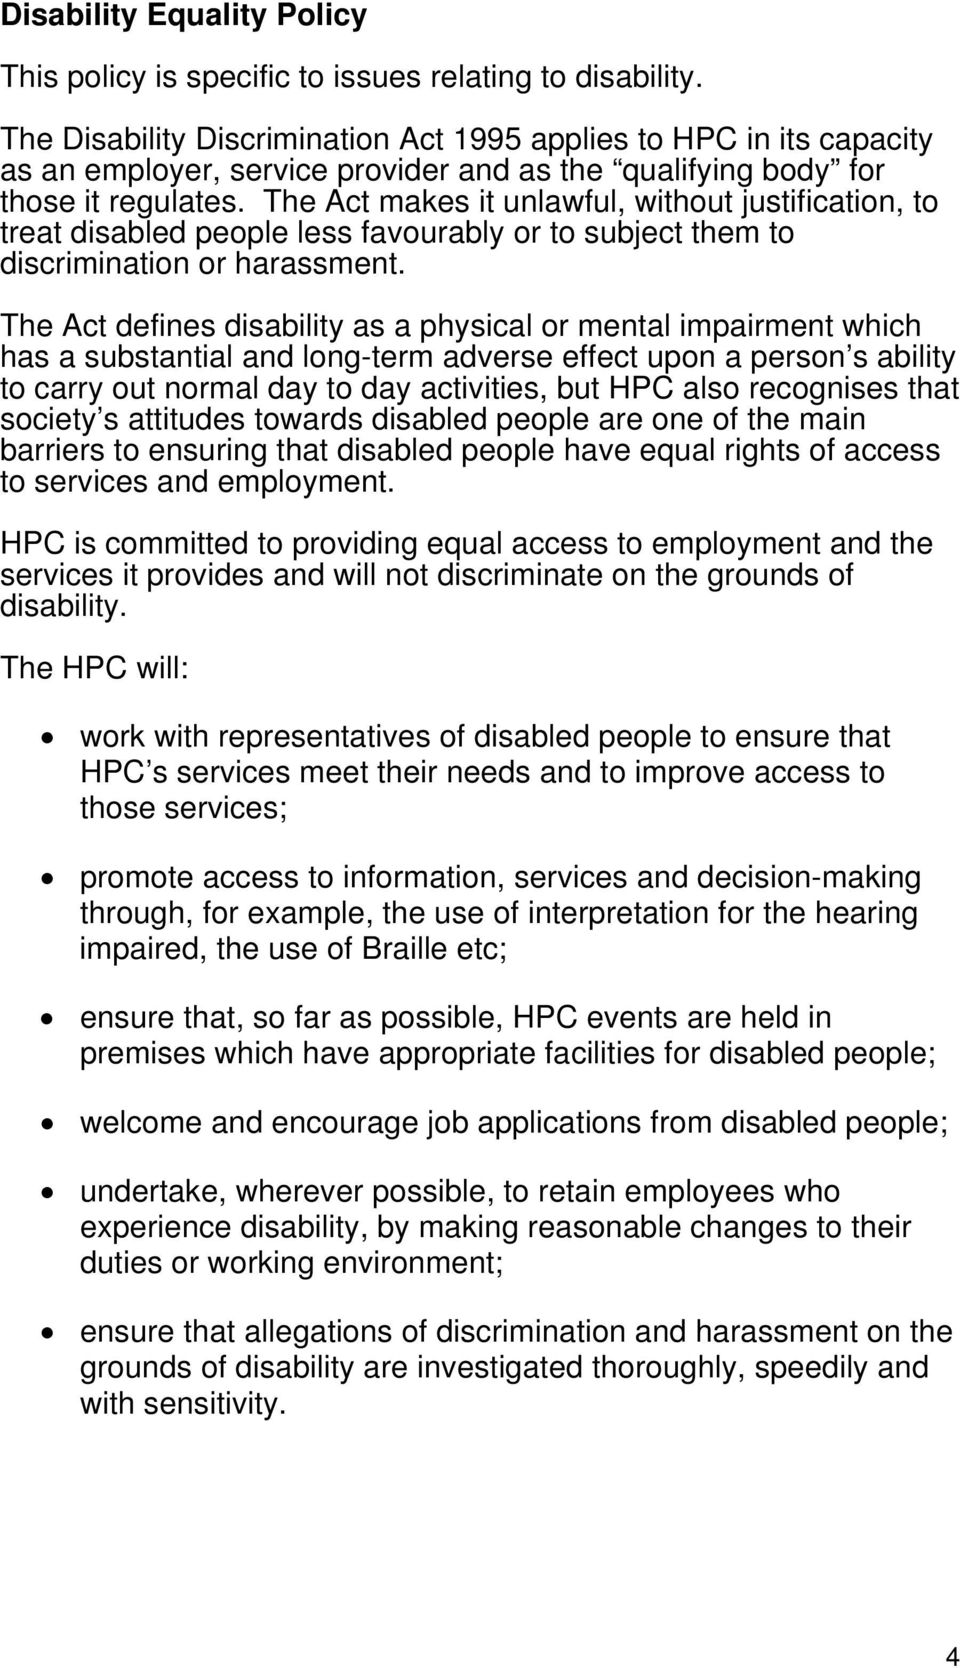 The Act makes it unlawful, without justification, to treat disabled people less favourably or to subject them to discrimination or harassment.